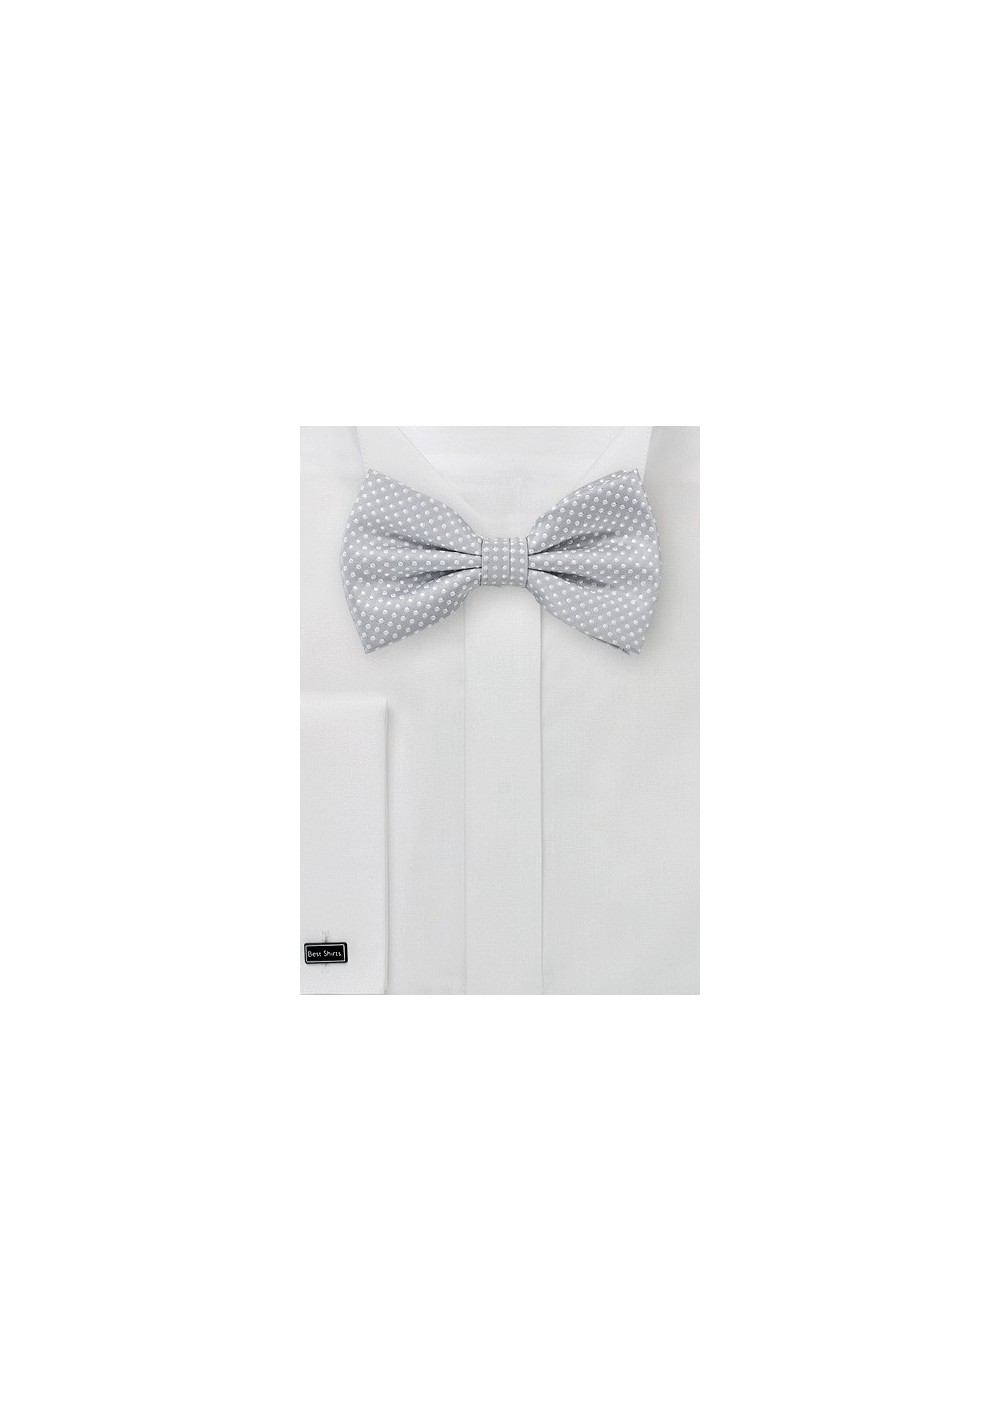 Pin Dot Bow Tie in Silver and White